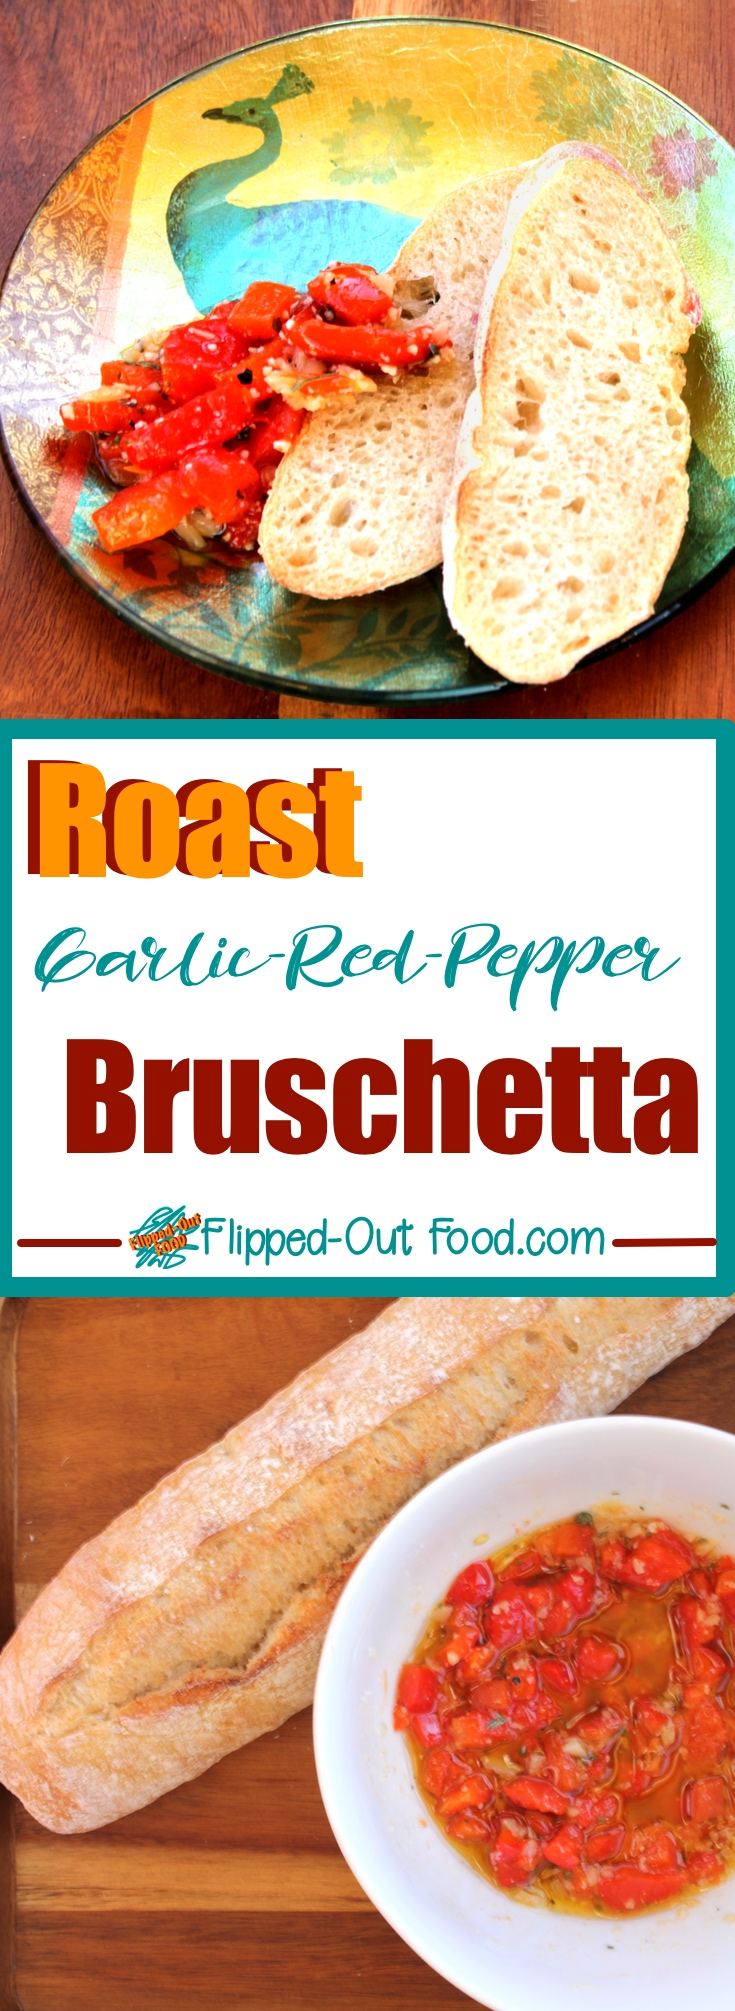 Roast Garlic-Sweet-Pepper Bruschetta: a perfect appetizer for parties or date-night. Use the leftovers for pizza toppings or a delicious, no-cook sauce for pasta. Via @FlippedOutFood #bruschetta #bruschettatopping #italian #appetizer #datenight #romanticfood #partyfood